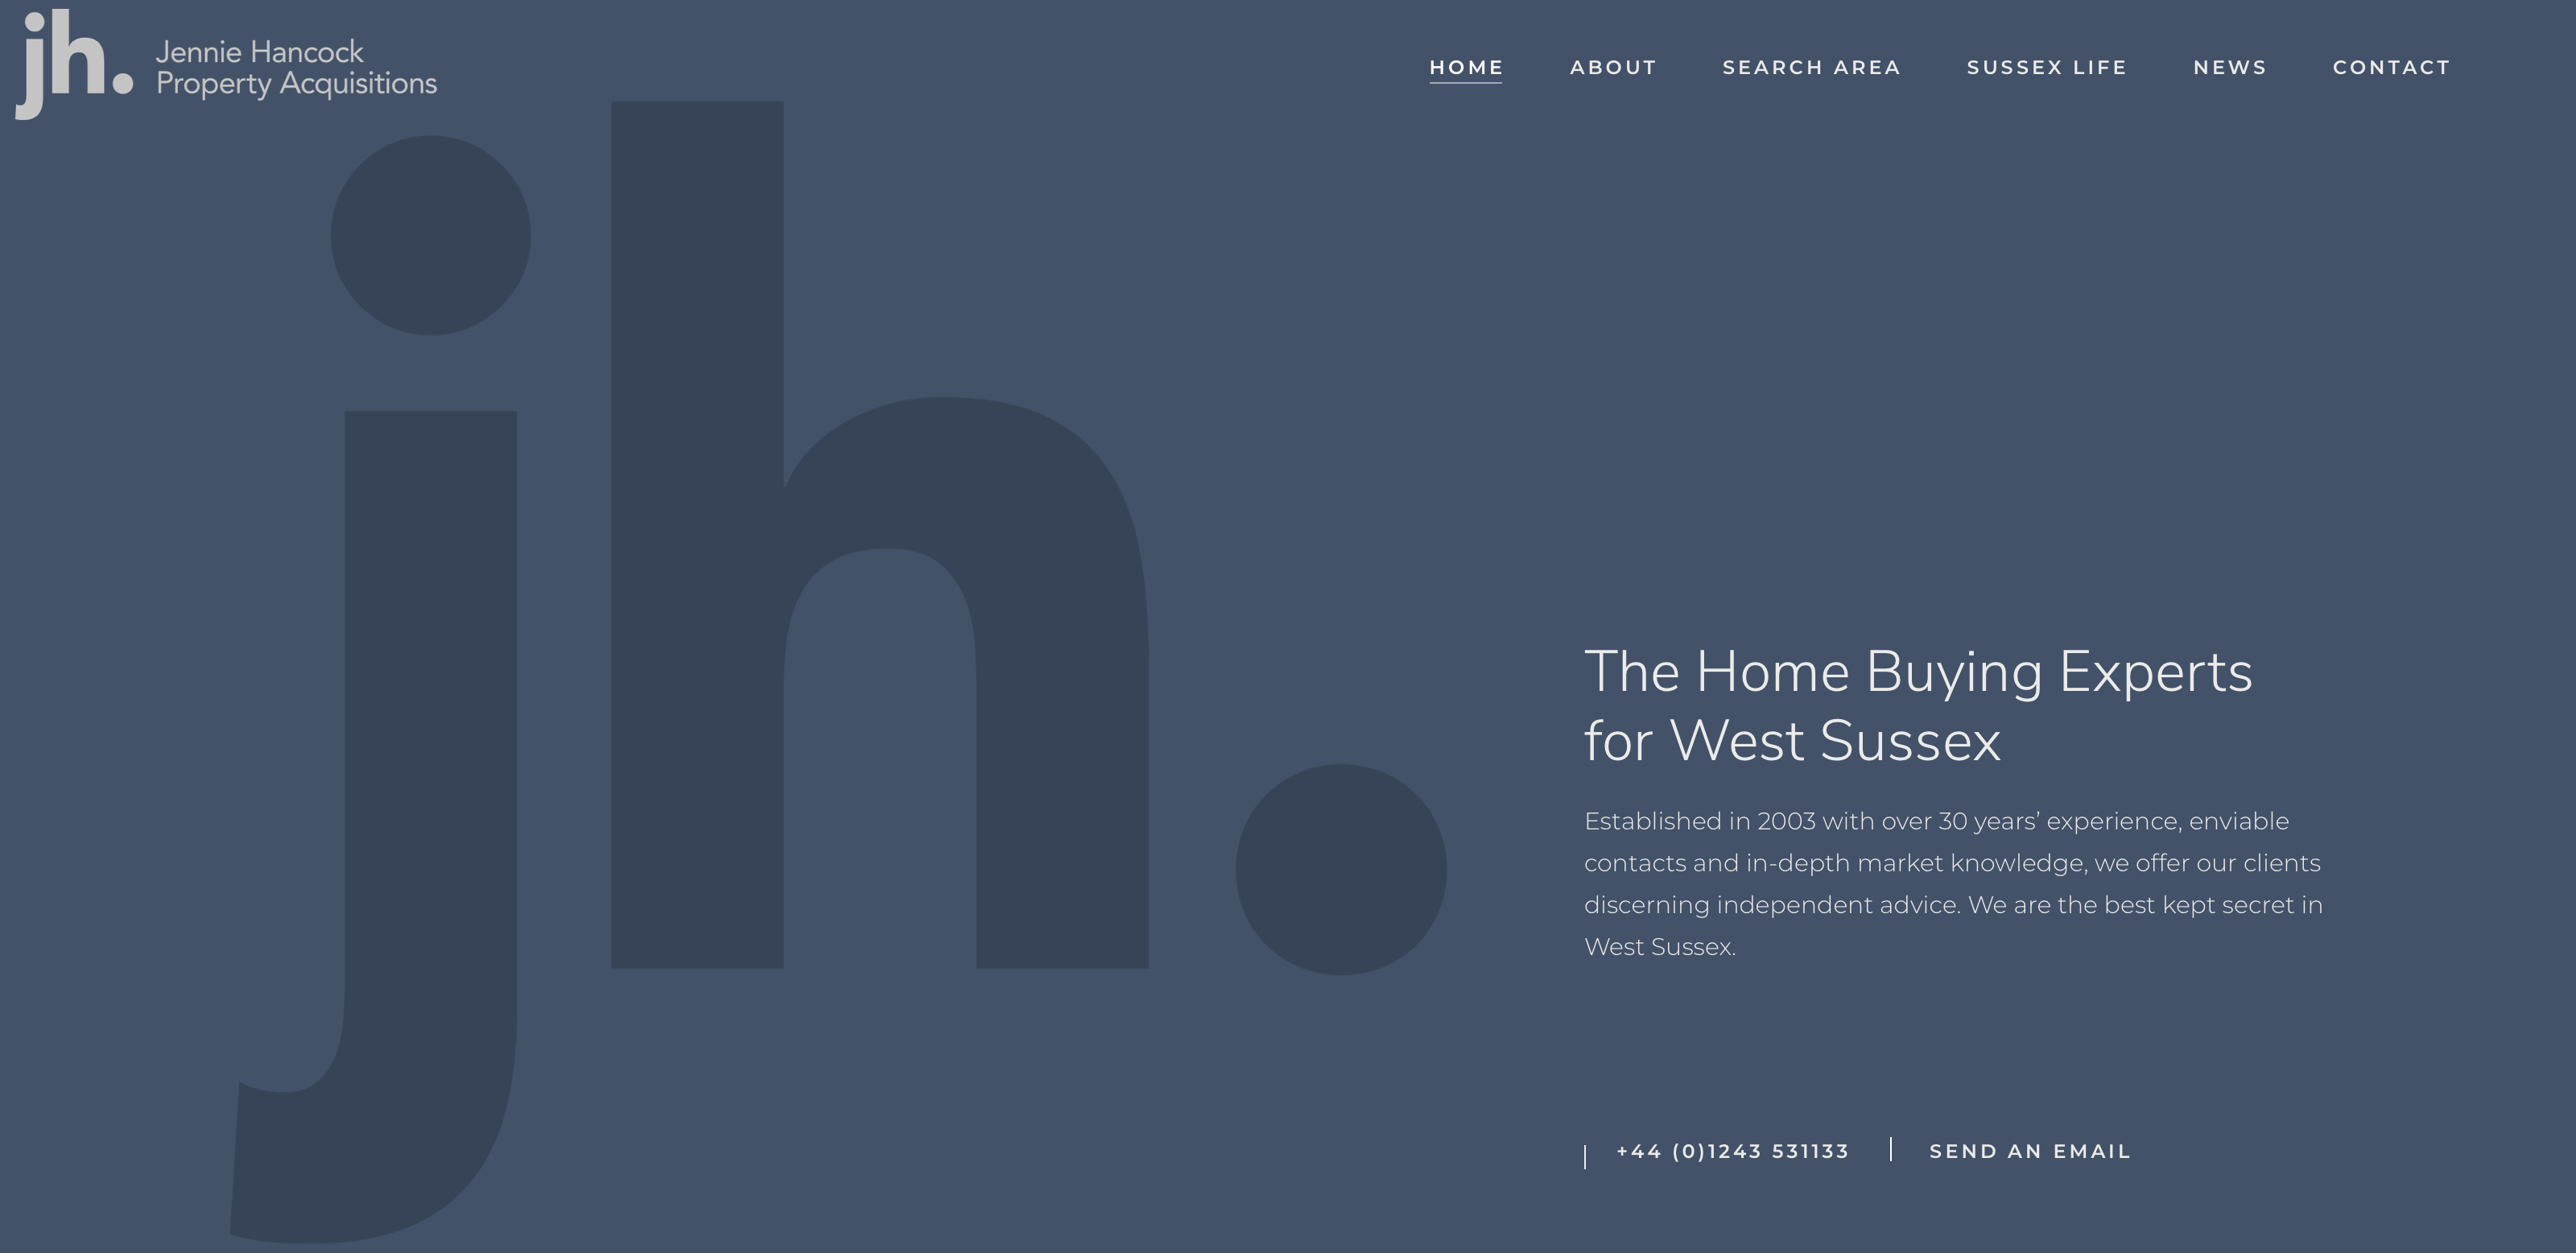 The Property Acquisitions Website Has Had a Facelift